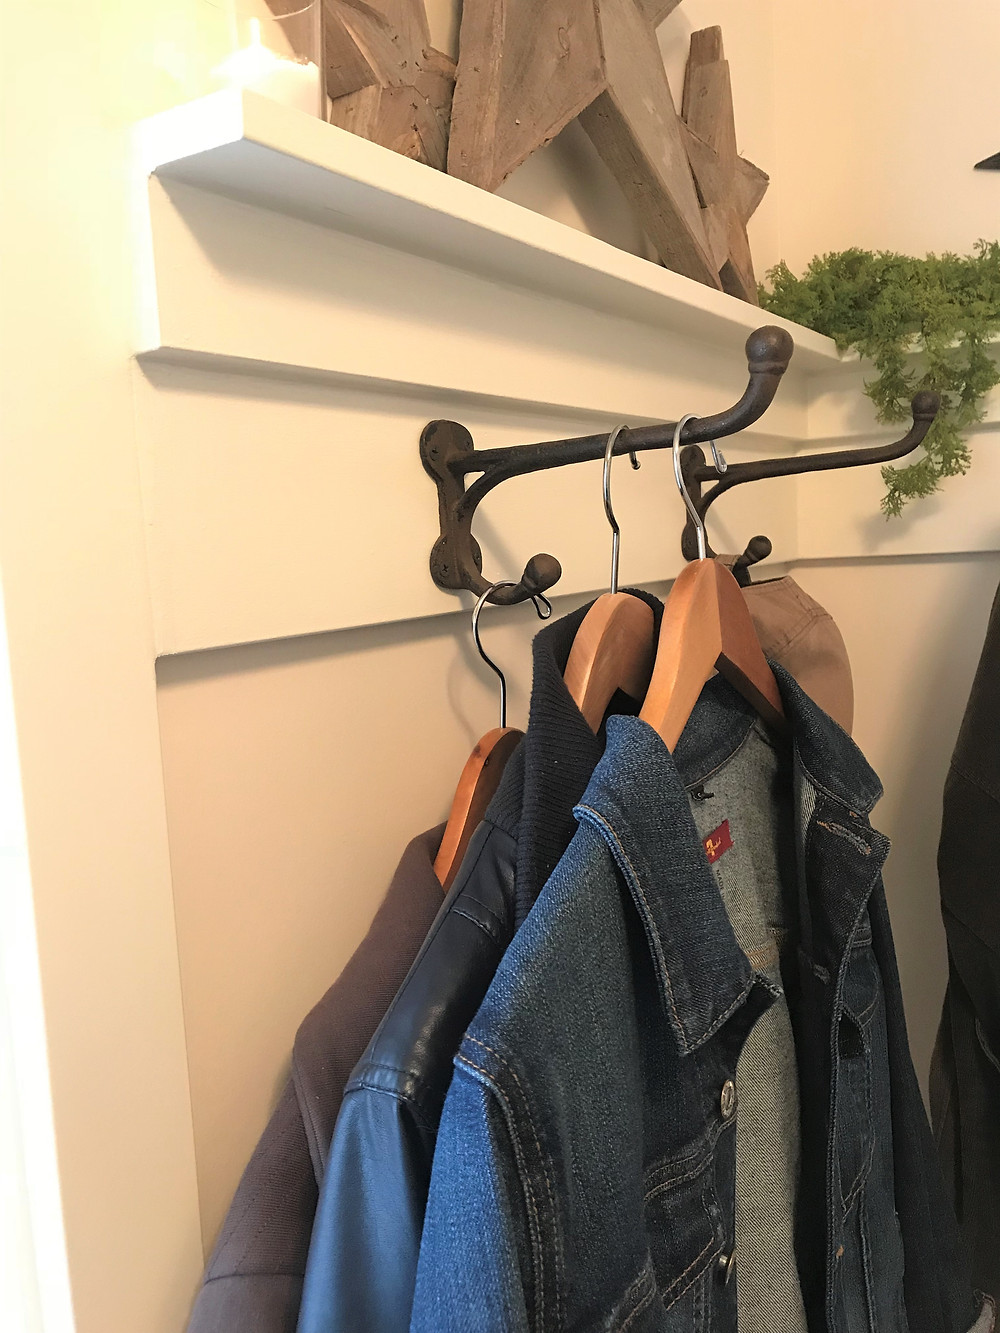 Coat racks made from trim pieces